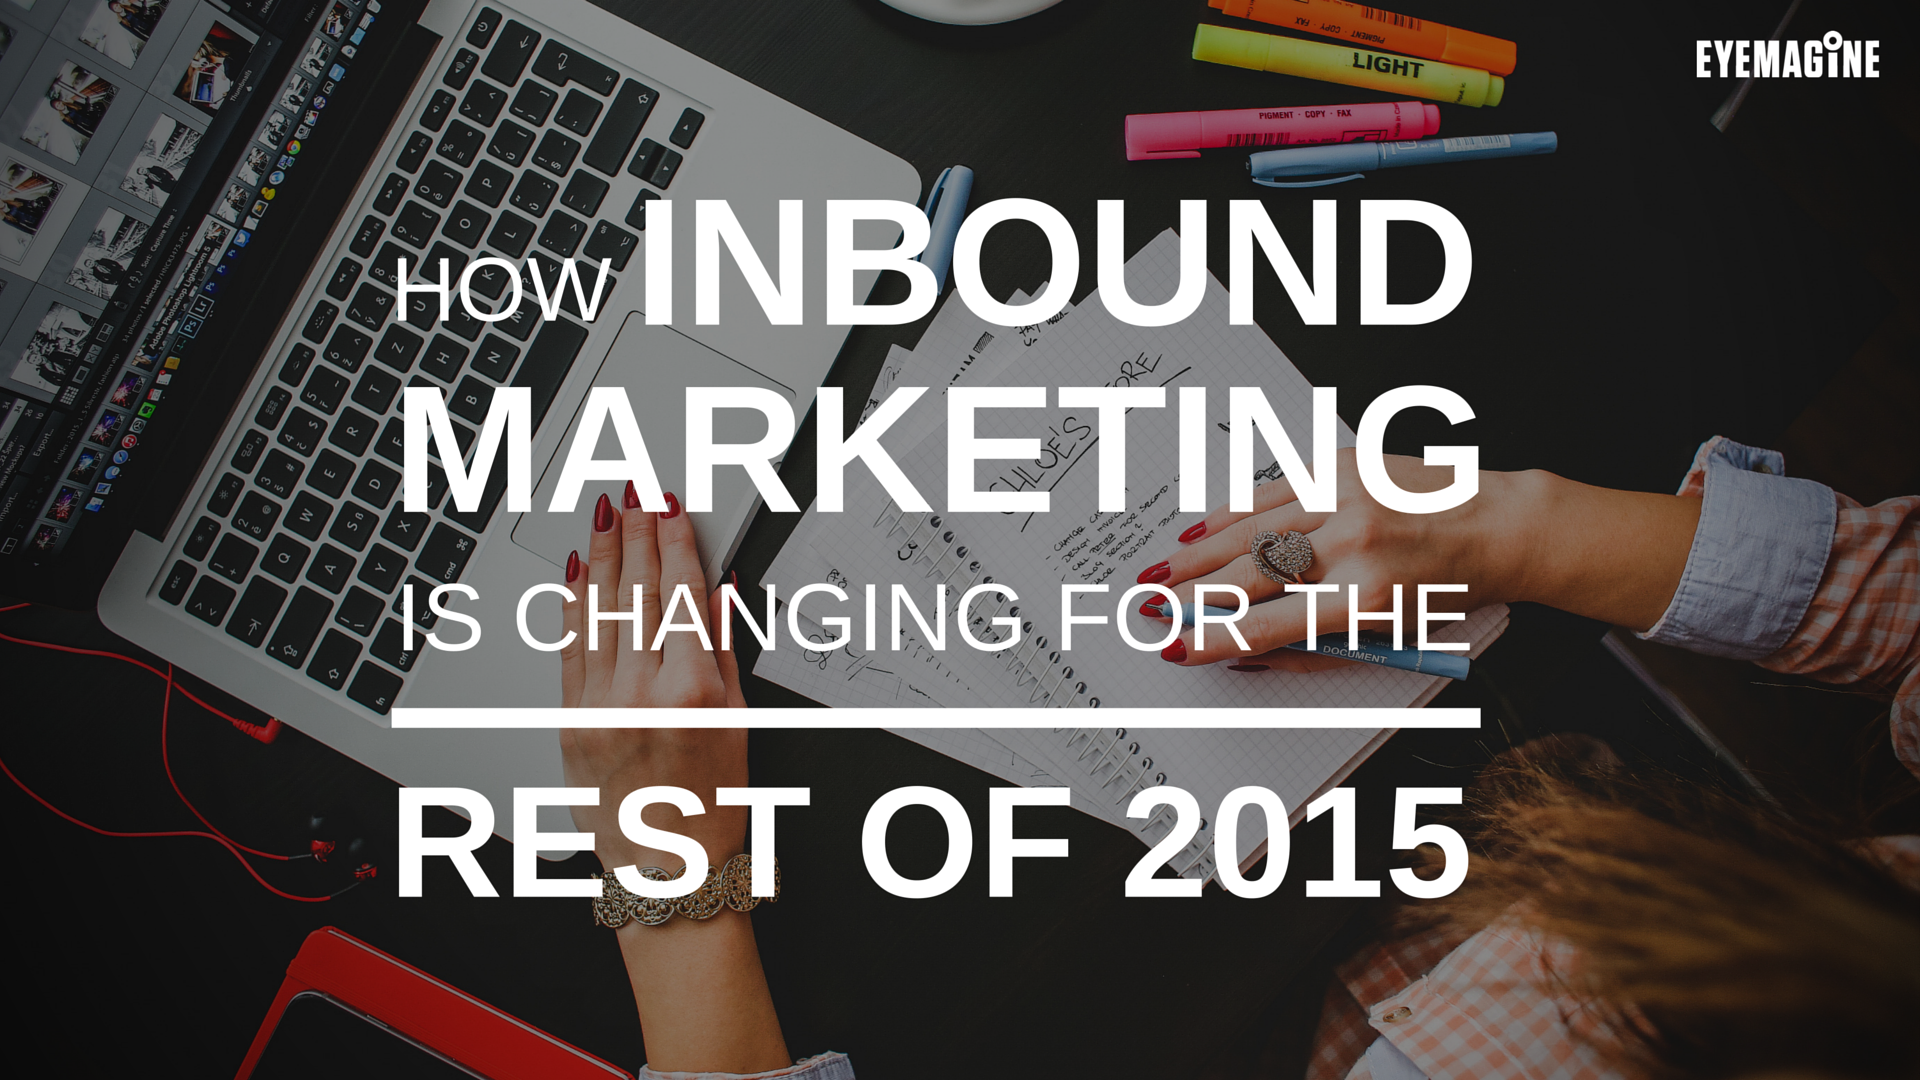 How Inbound Marketing is Changing for the Rest of 2015